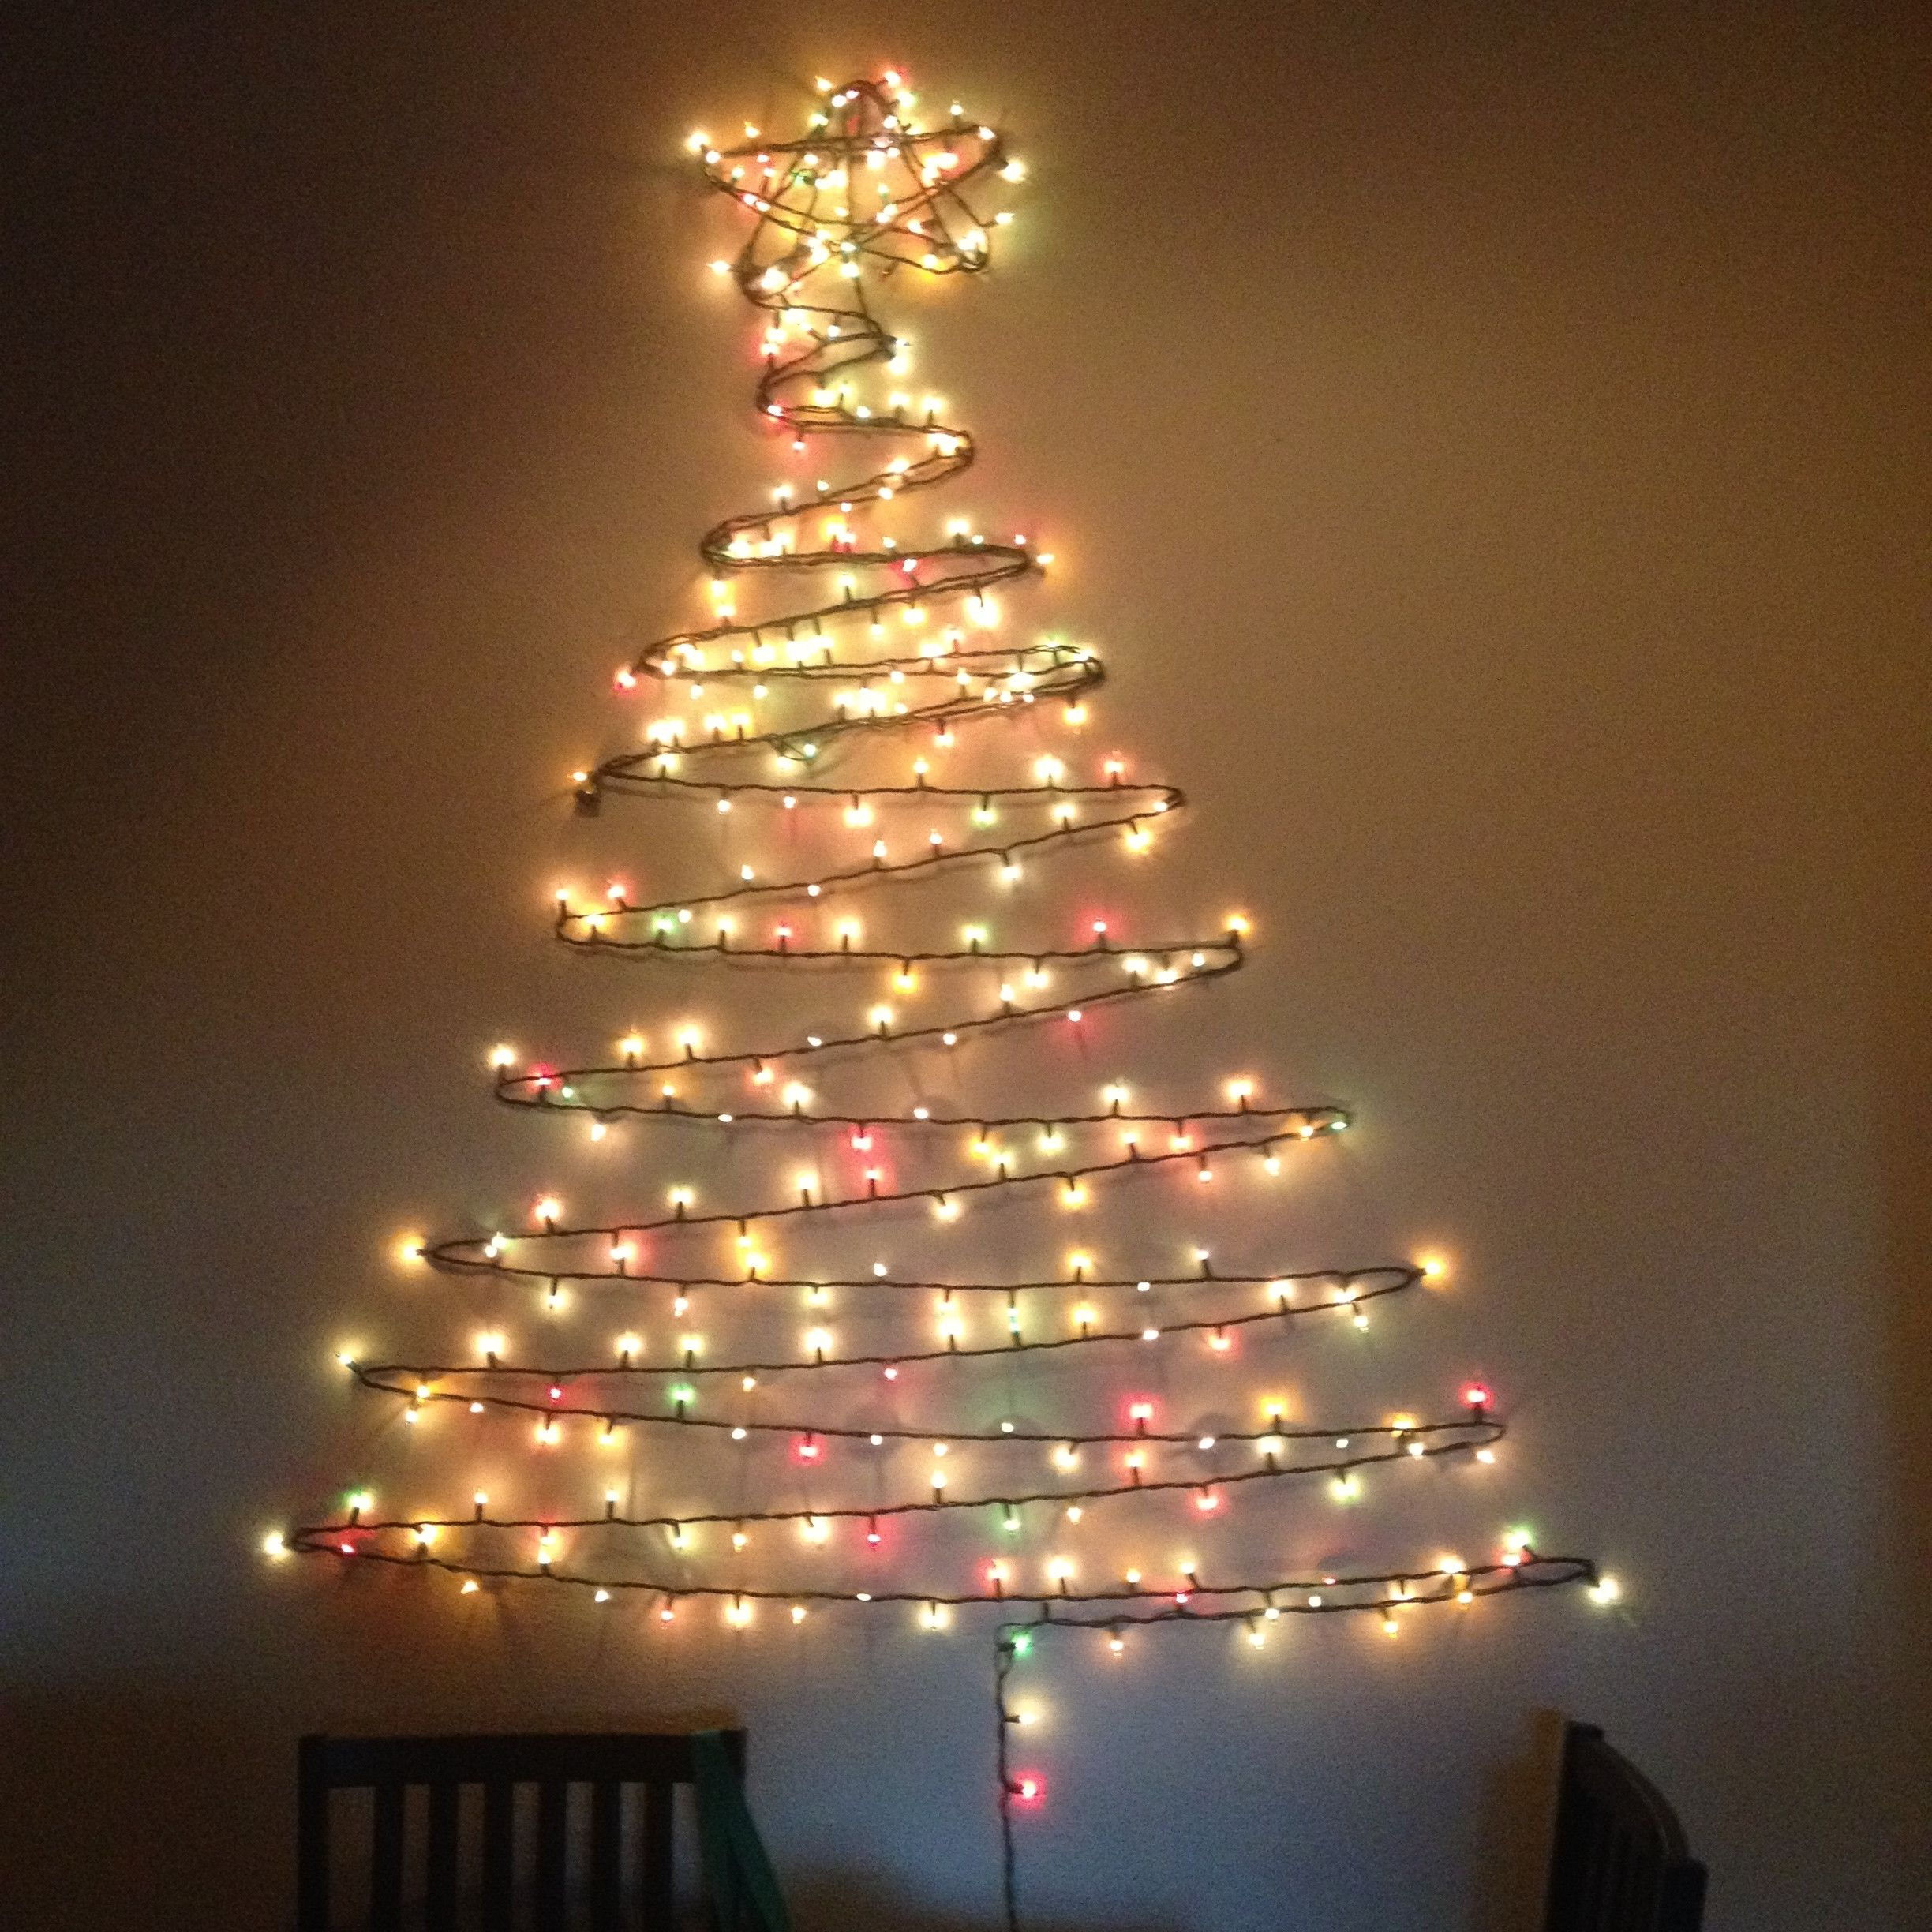 11 Last Minute Diy Christmas Trees Wall Christmas Tree Diy Christmas Tree Best Christmas Lights